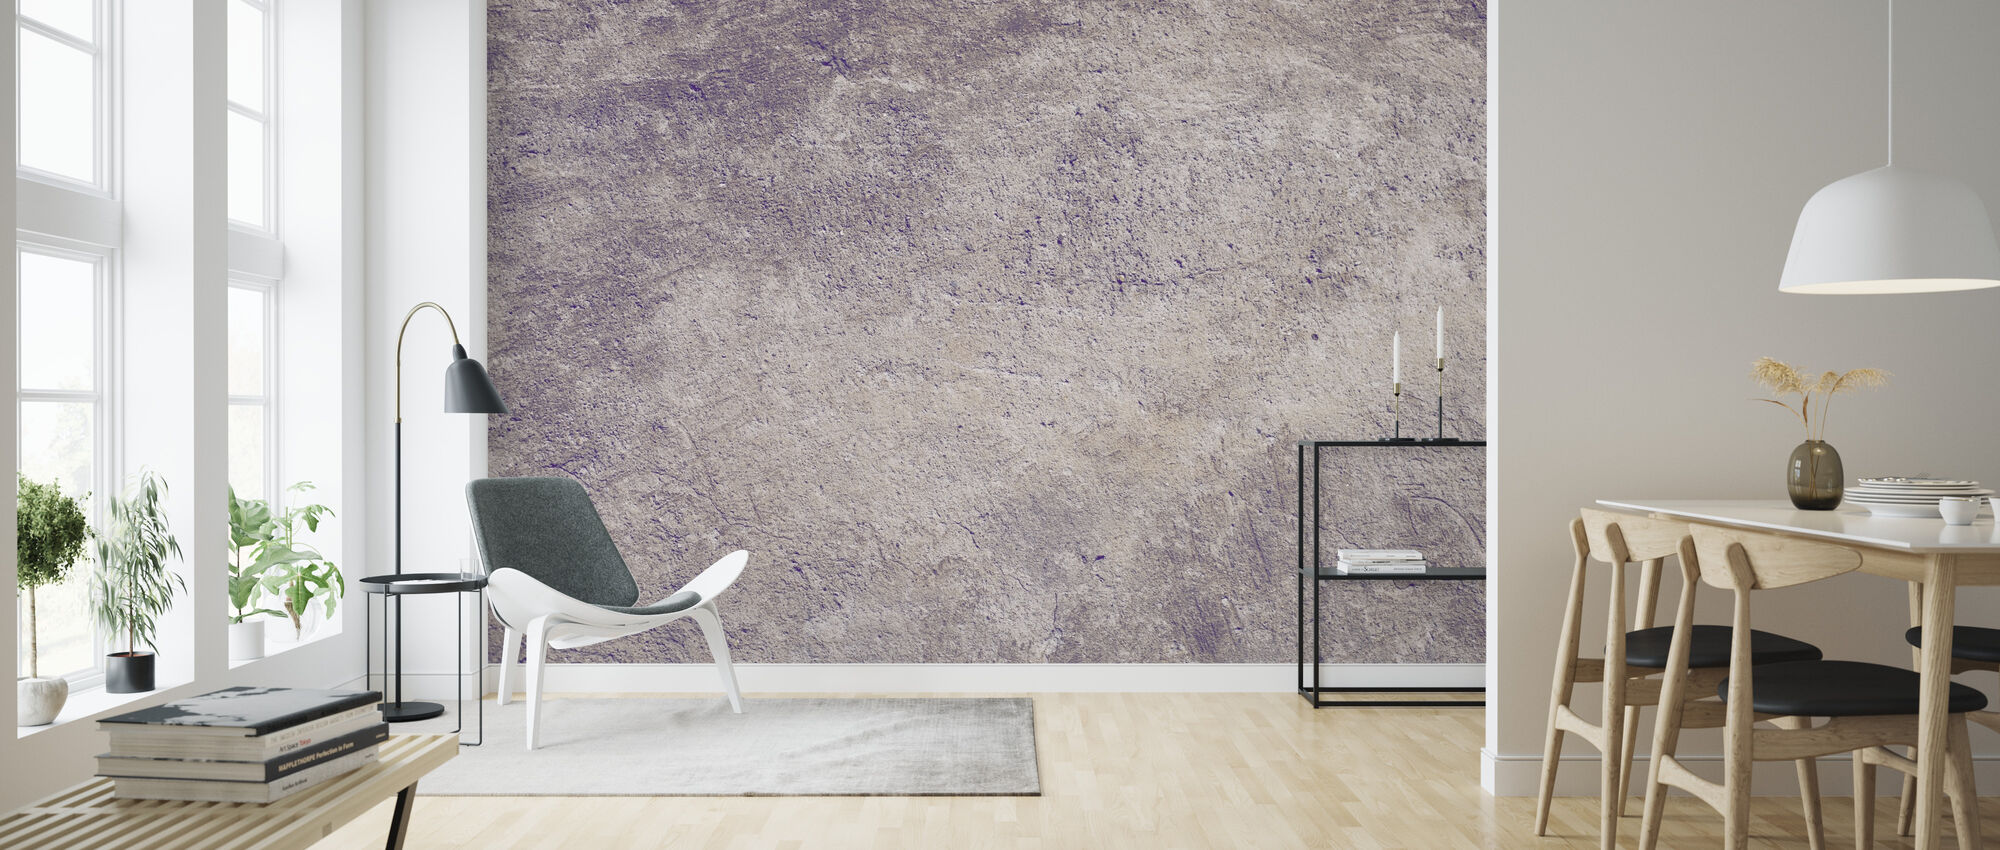 Lilac Colored Concrete Wall - Wallpaper - Living Room